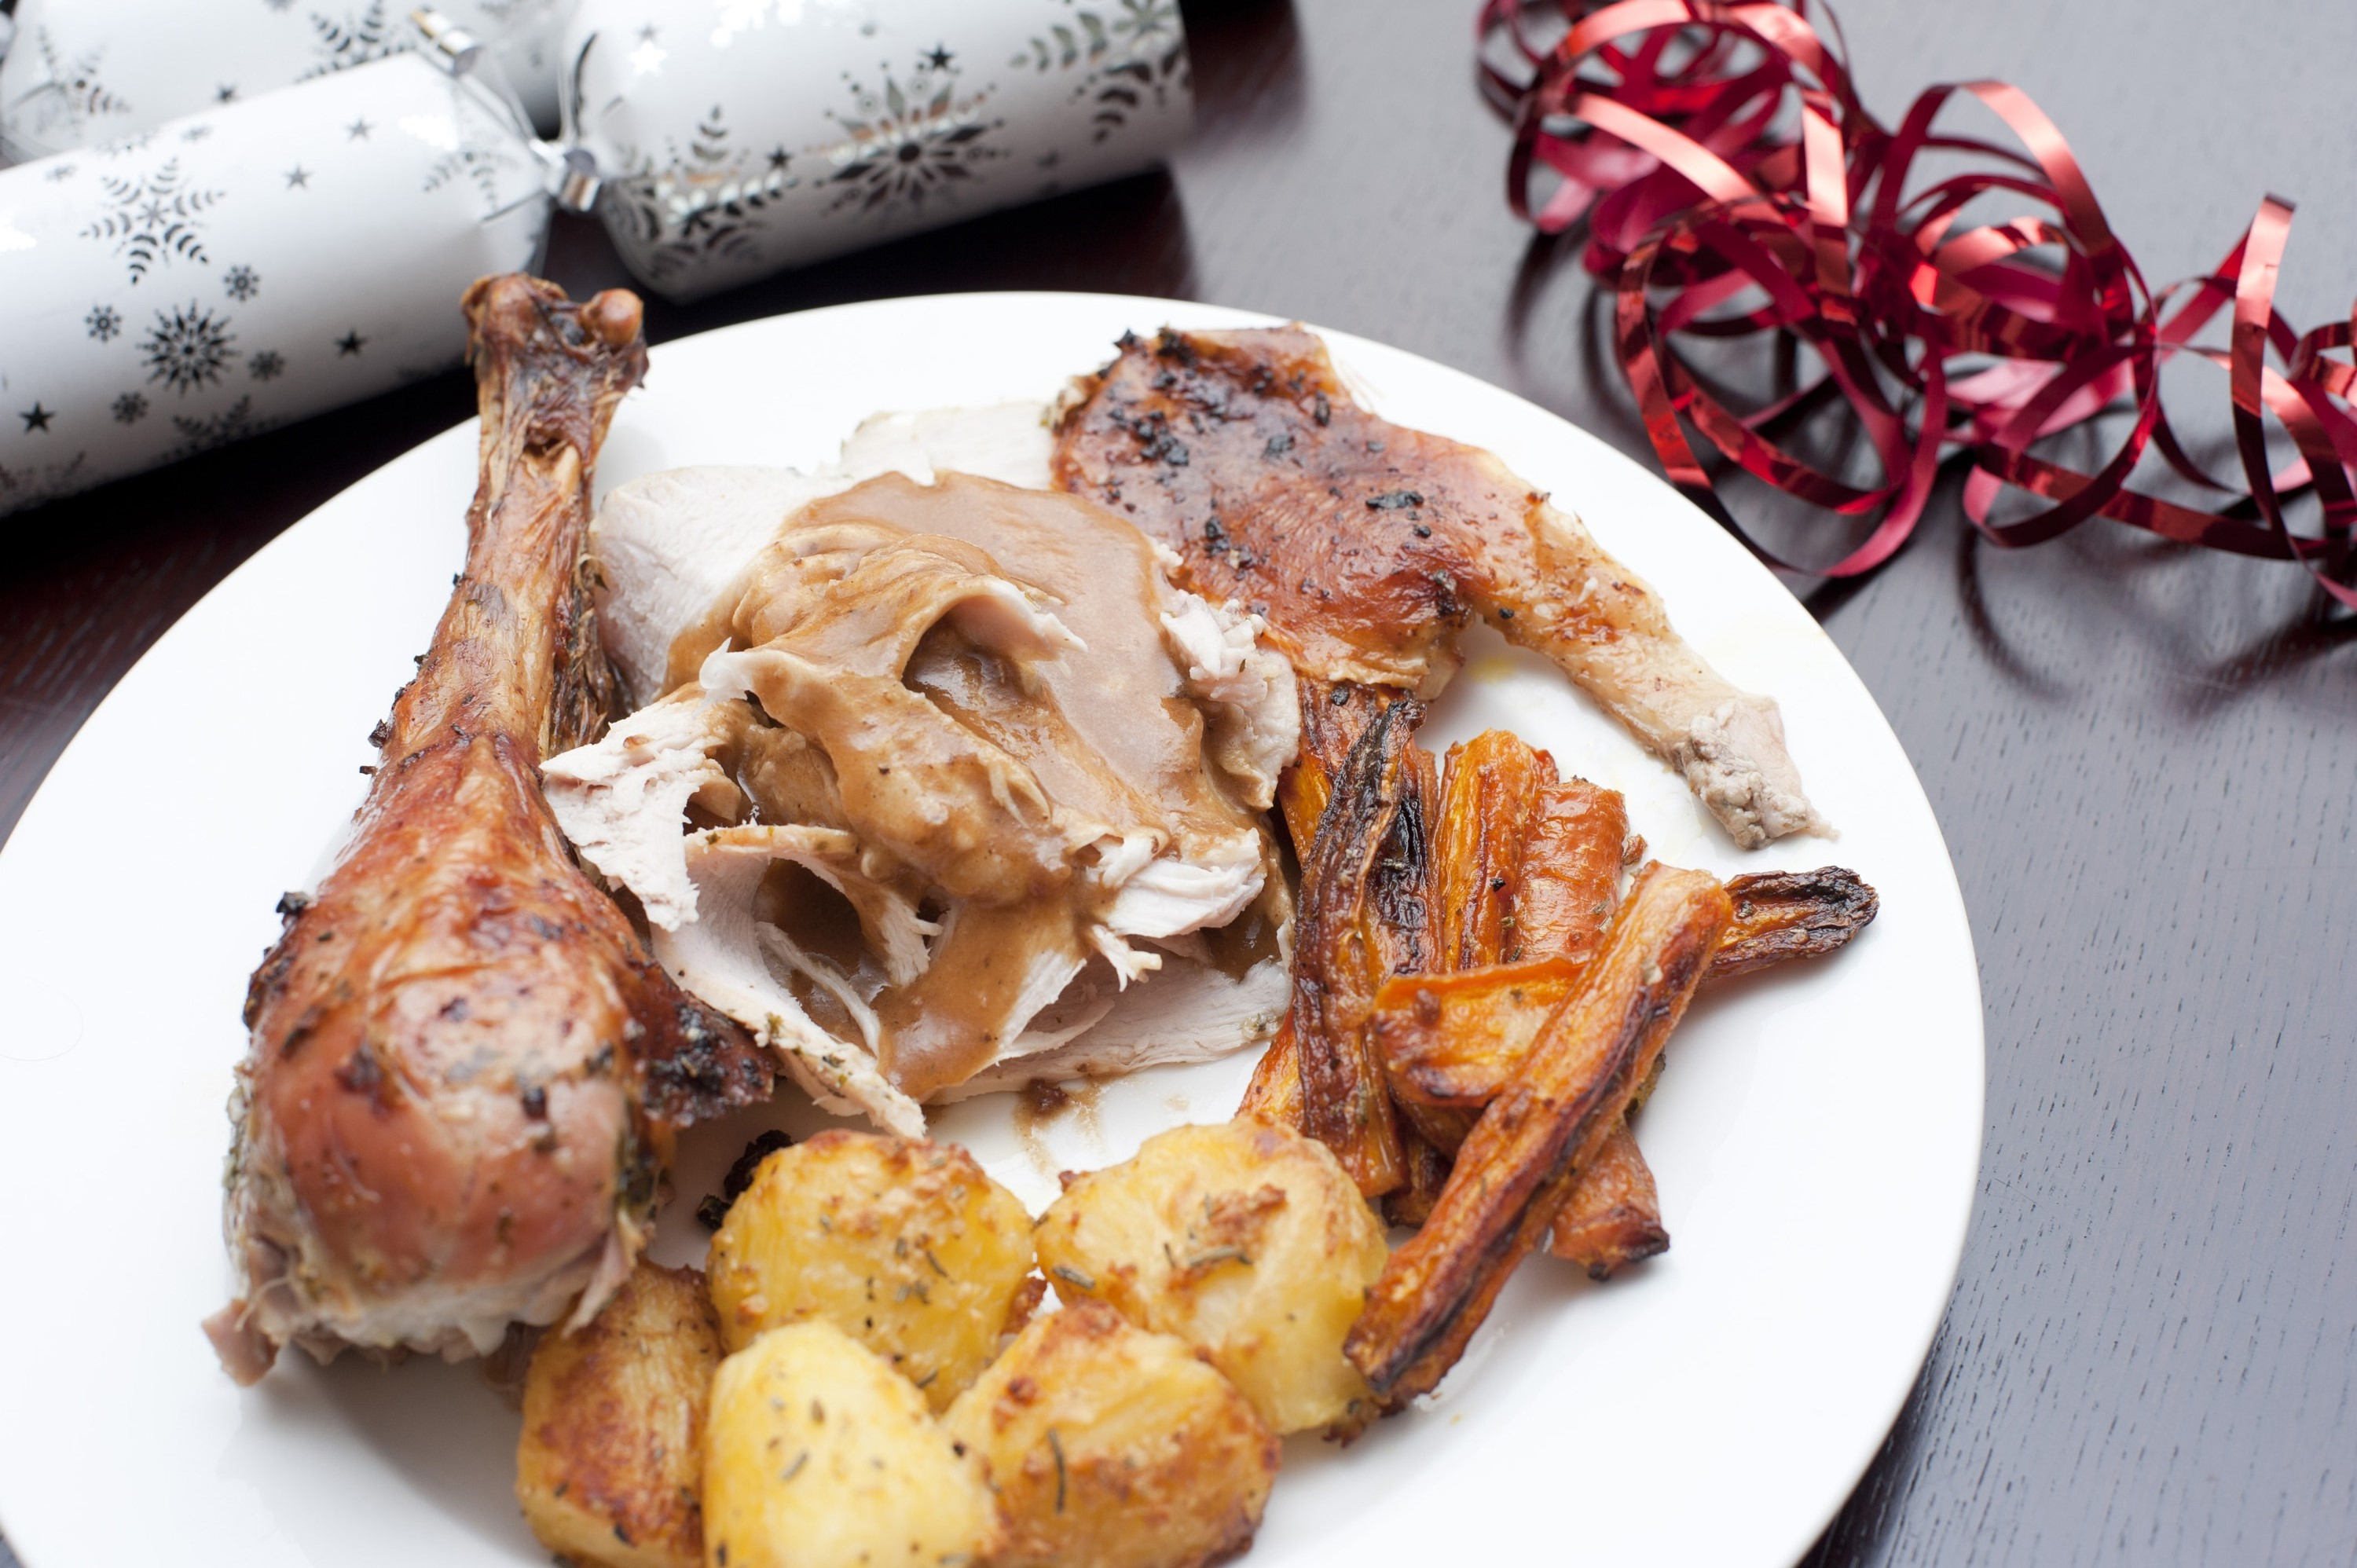 Serving of festive roast turkey topped with gravy with roasted potatoes and carrots for celebrating a Christmas dinner on a table with Christmas crackers